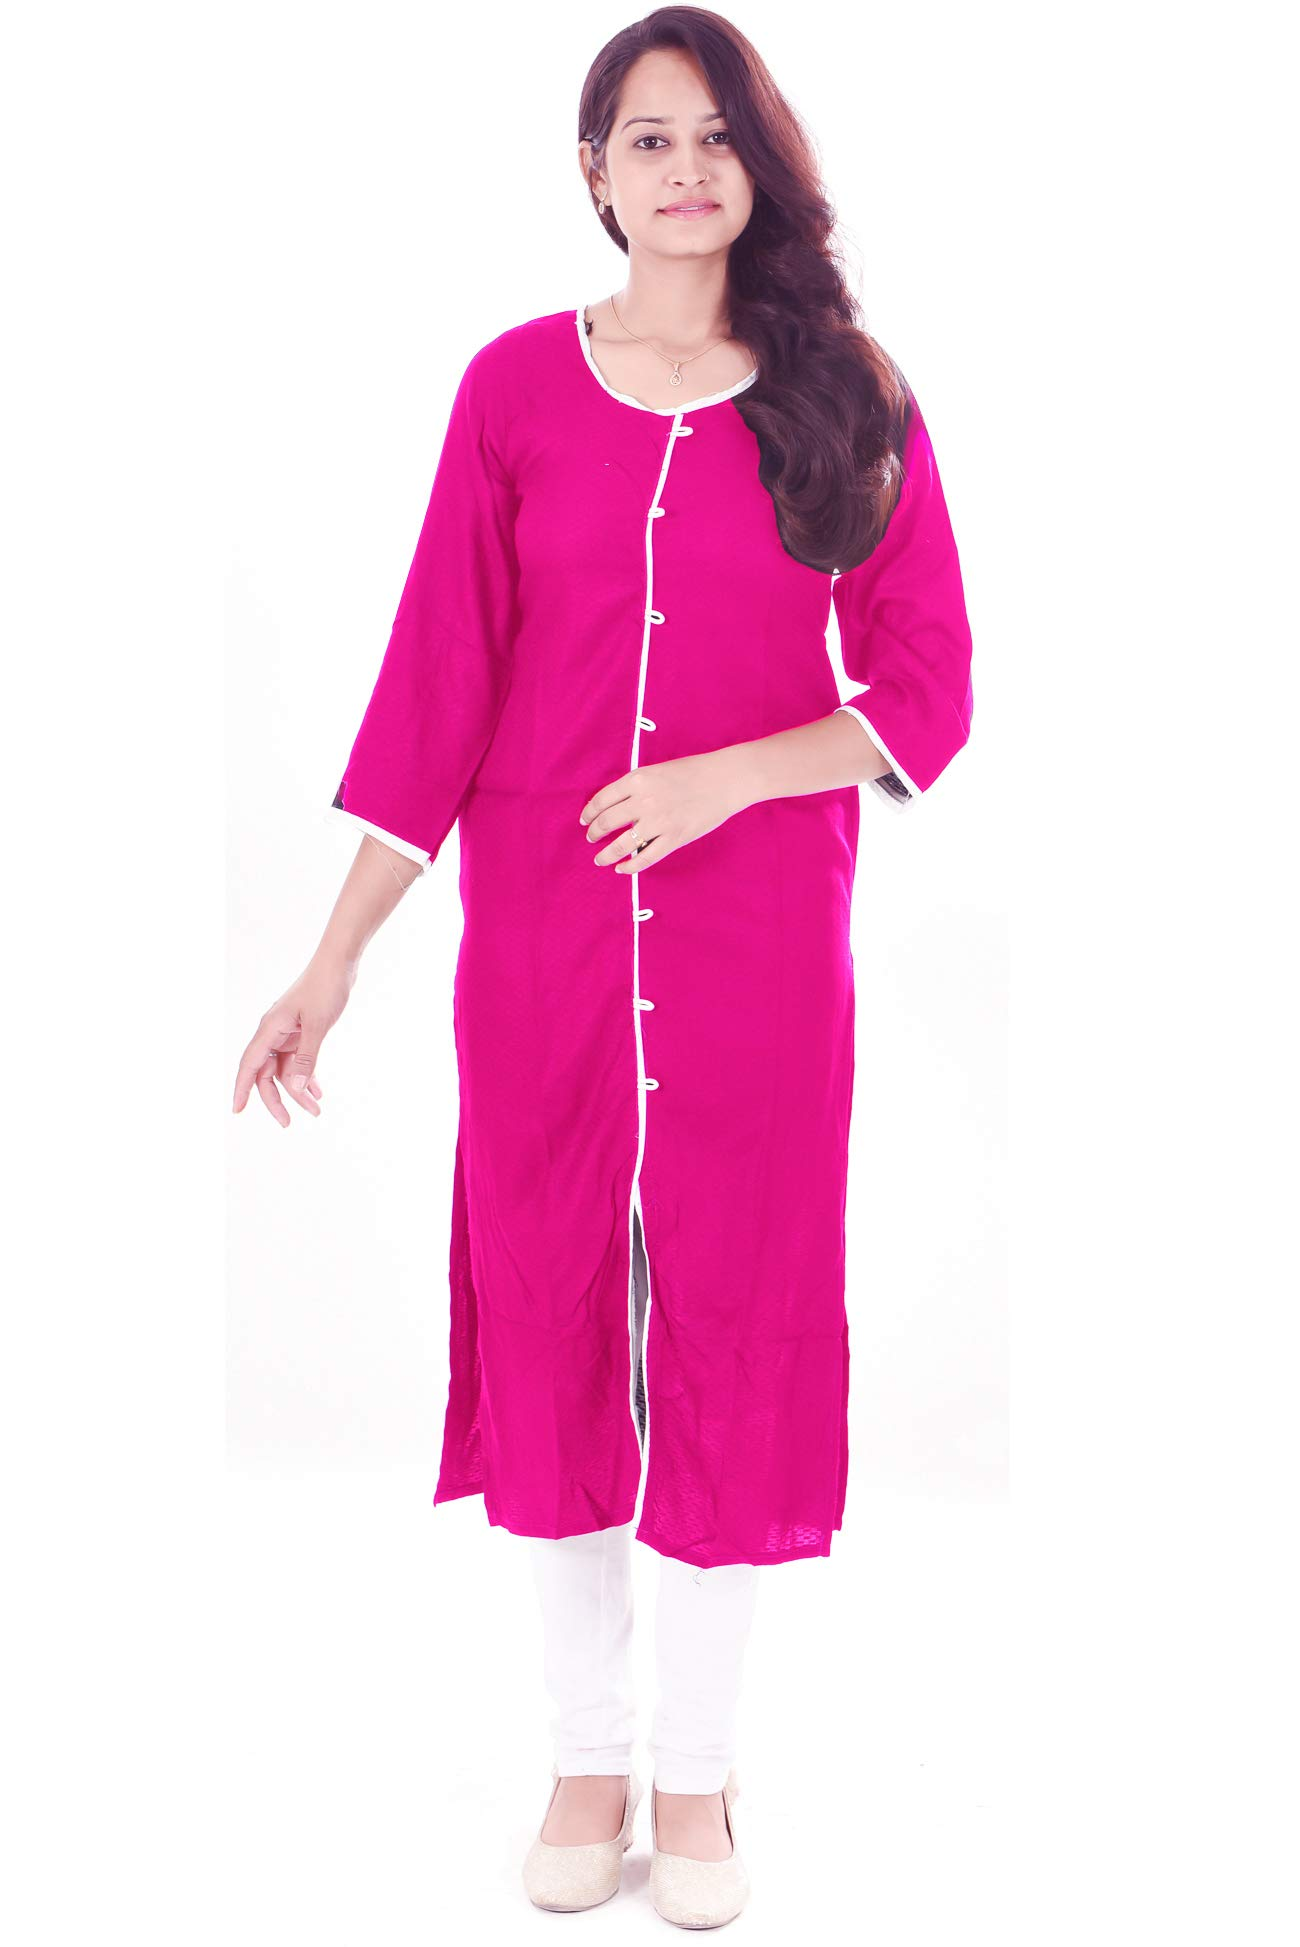 Available at Amazon: Lakkar haveli Women's Long Kurti Indian Casual Cotton Frock Suit Pink Color Plus Size Girls Maxi Gown Dress